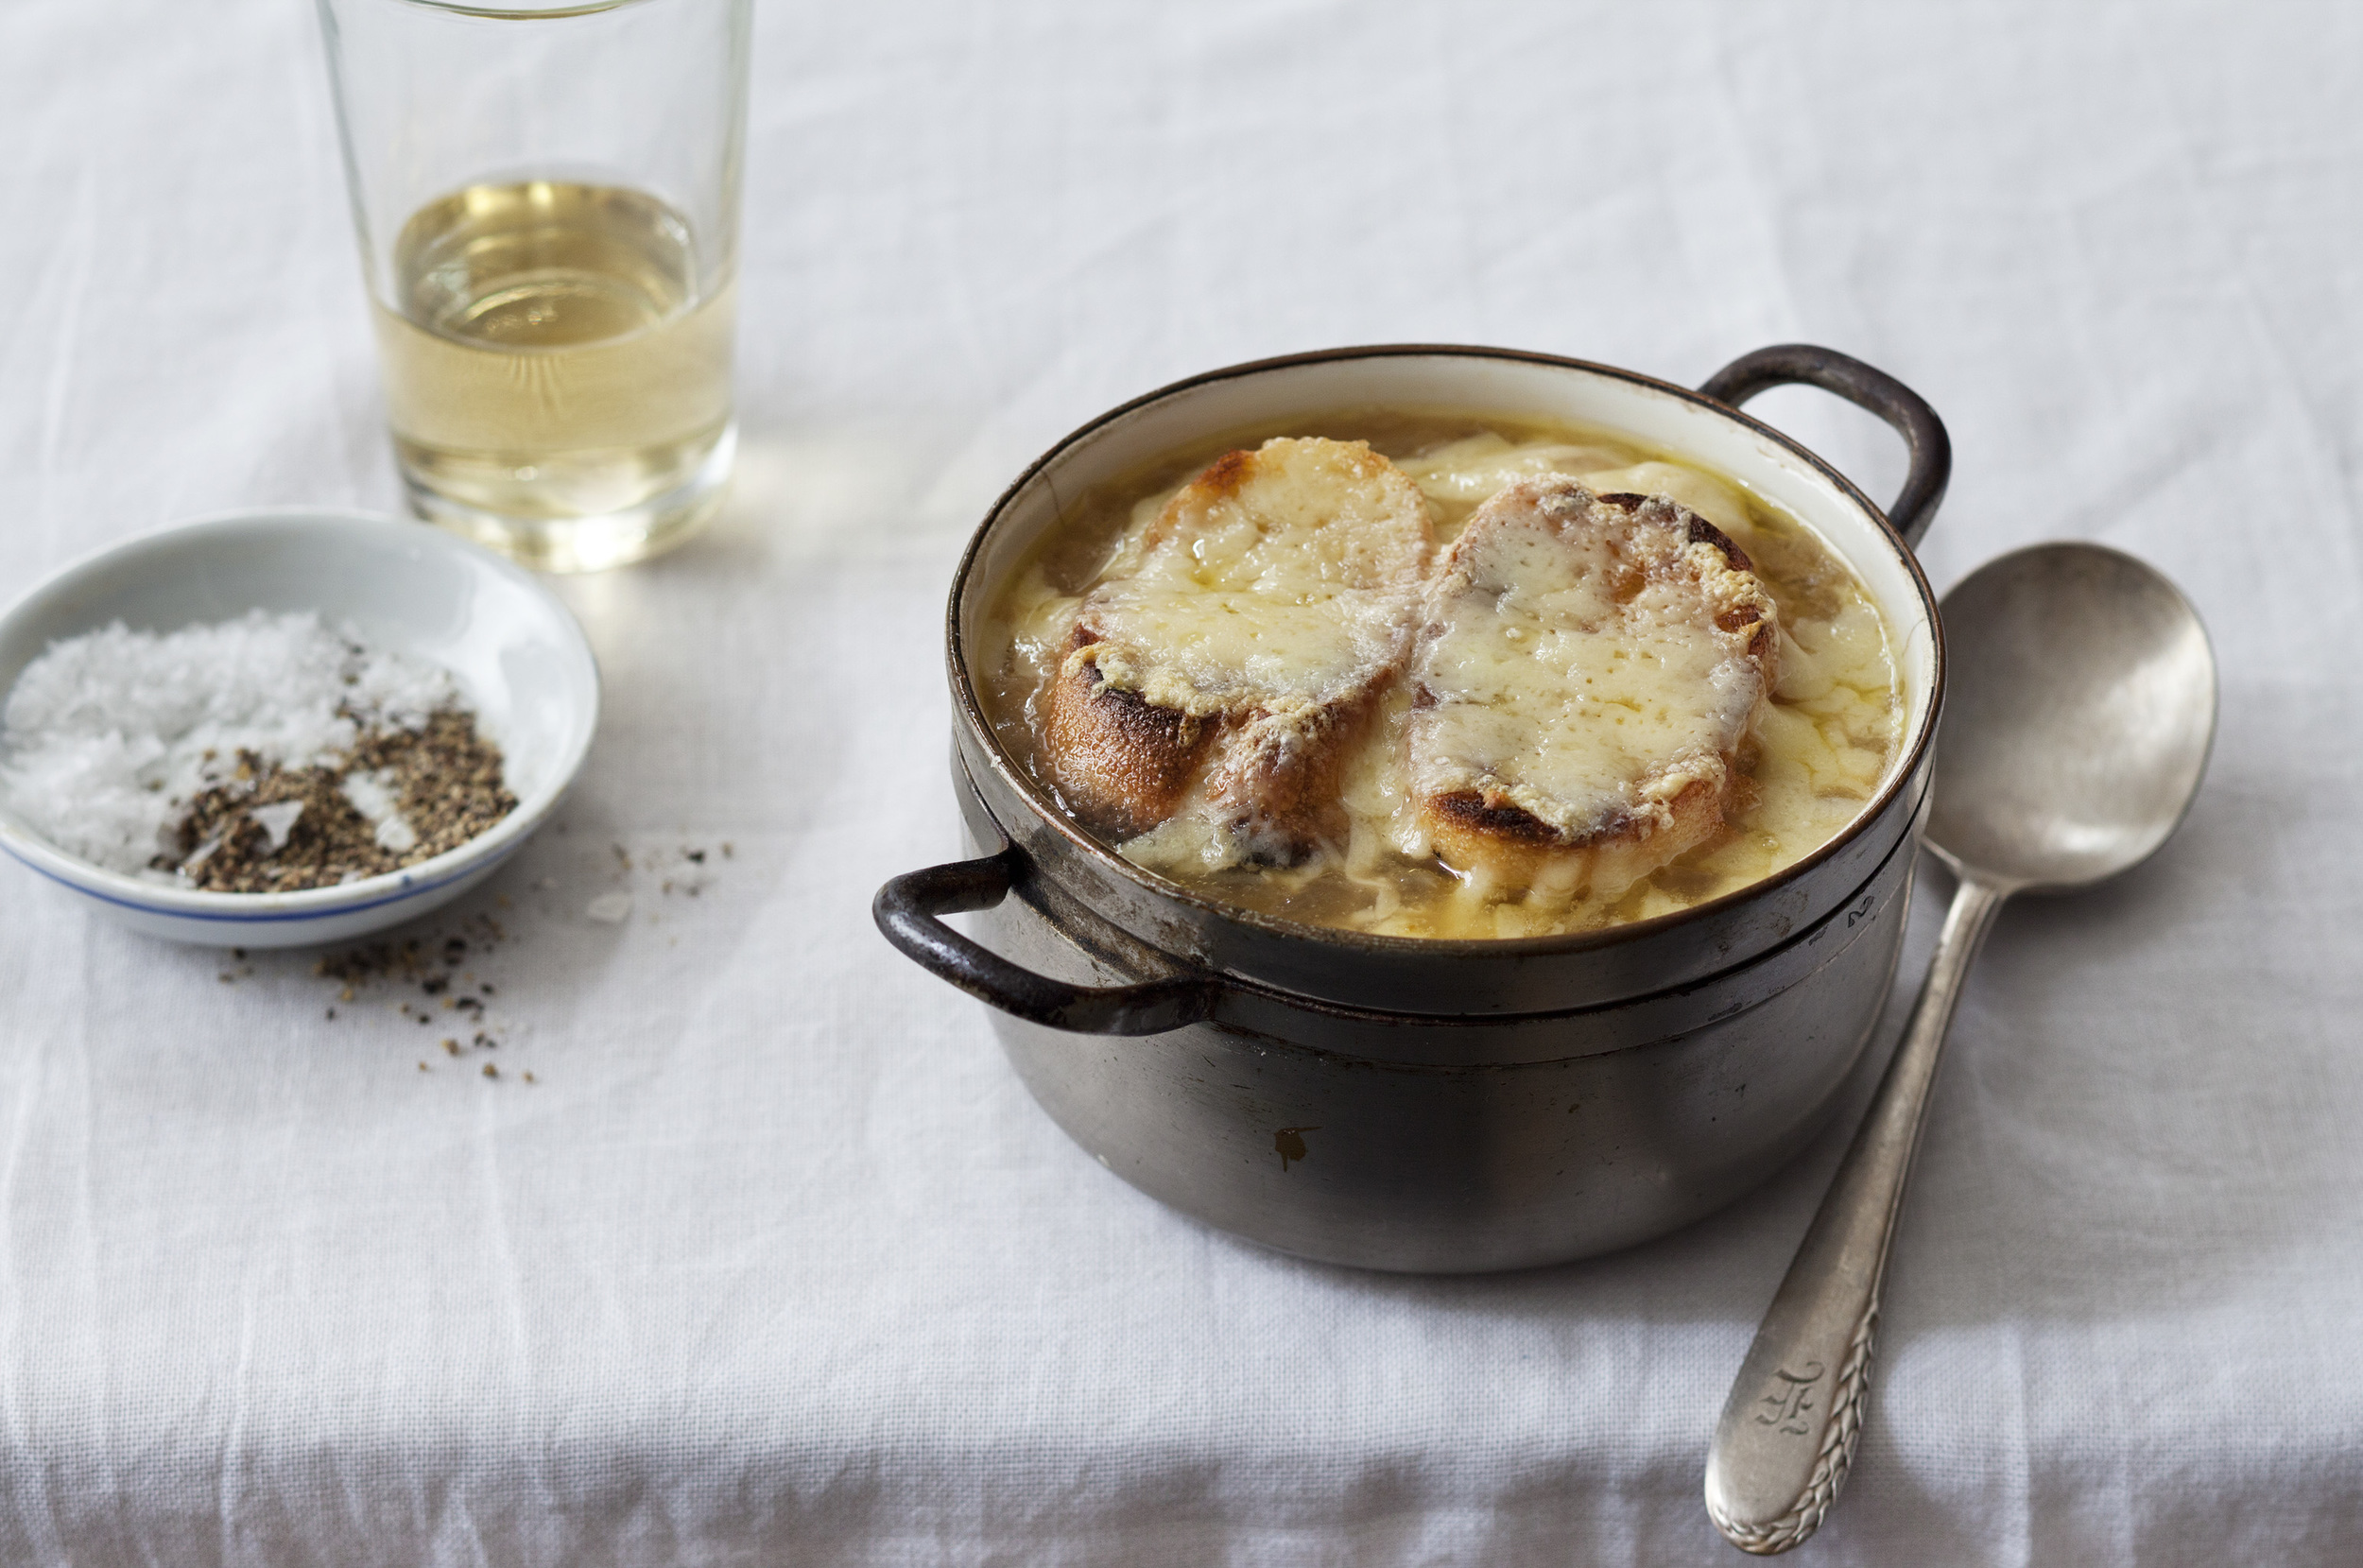 French Onion Soup with Roasted Bone Marrow:   French onion soup with gruyere livened up with the unctuous, indulgent flavour of roasted bone marrow.